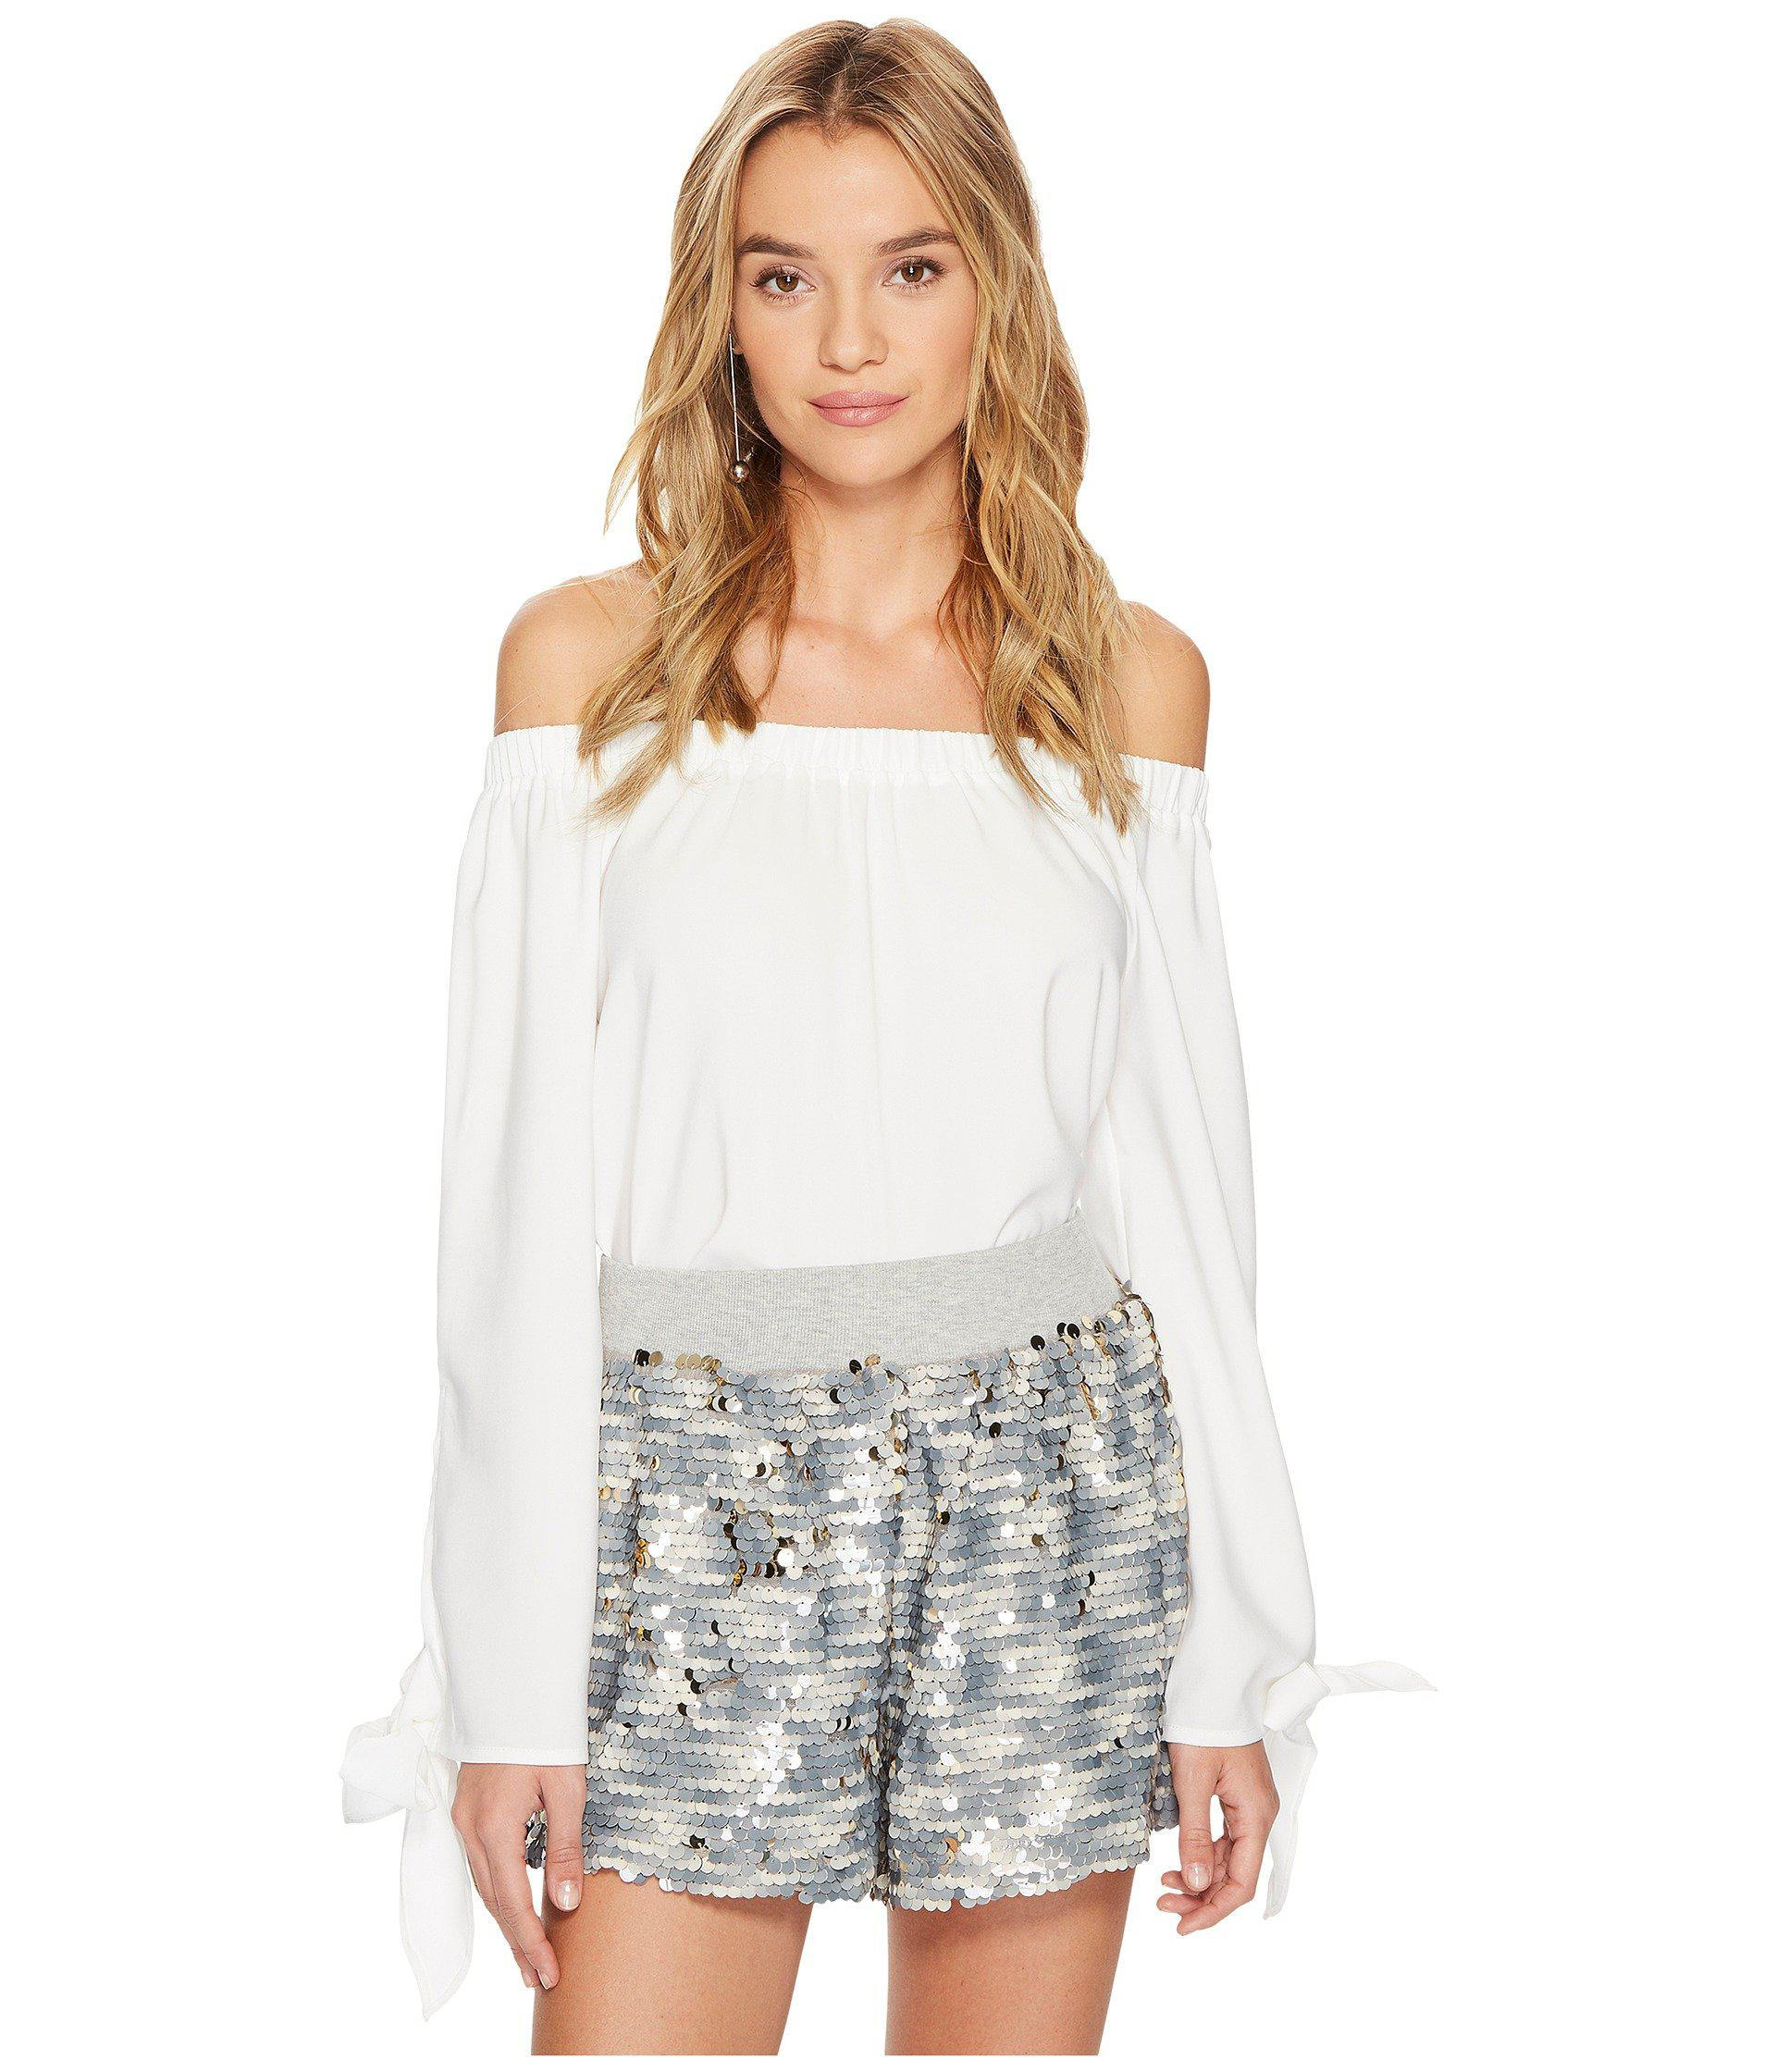 bd26318ea6f83 Lyst - Bishop + Young Avery Off Shoulder Top in White - Save ...